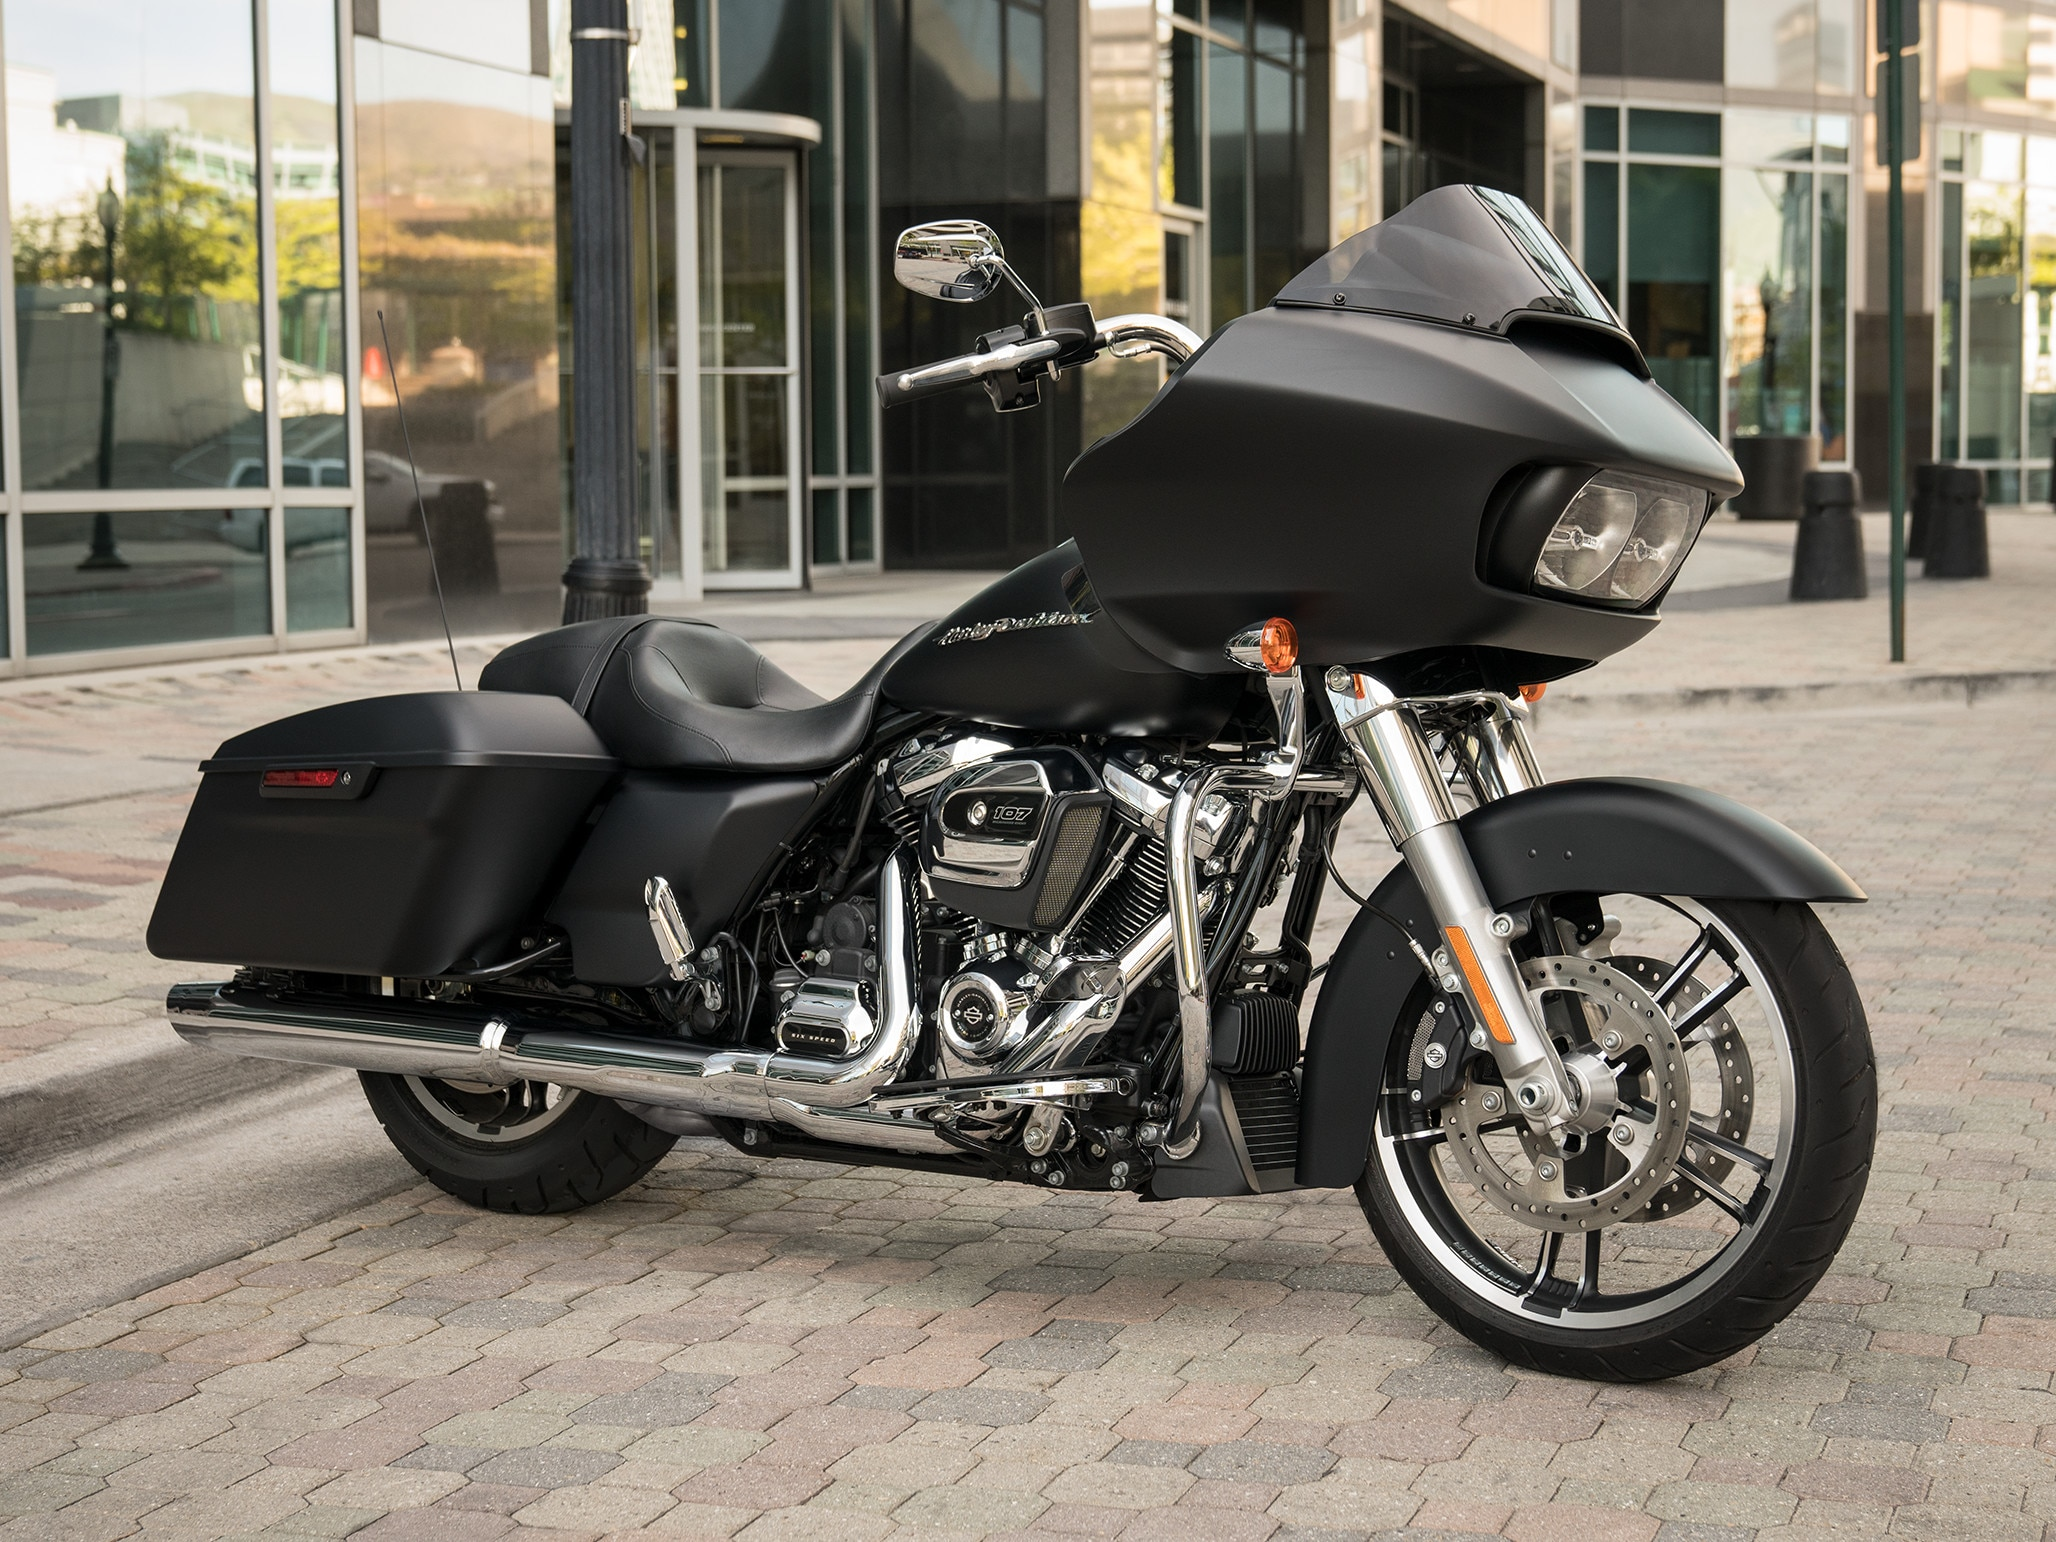 hight resolution of harley revolution x engine diagram wiring library2018 road glide harley davidson usa road glide harley revolution